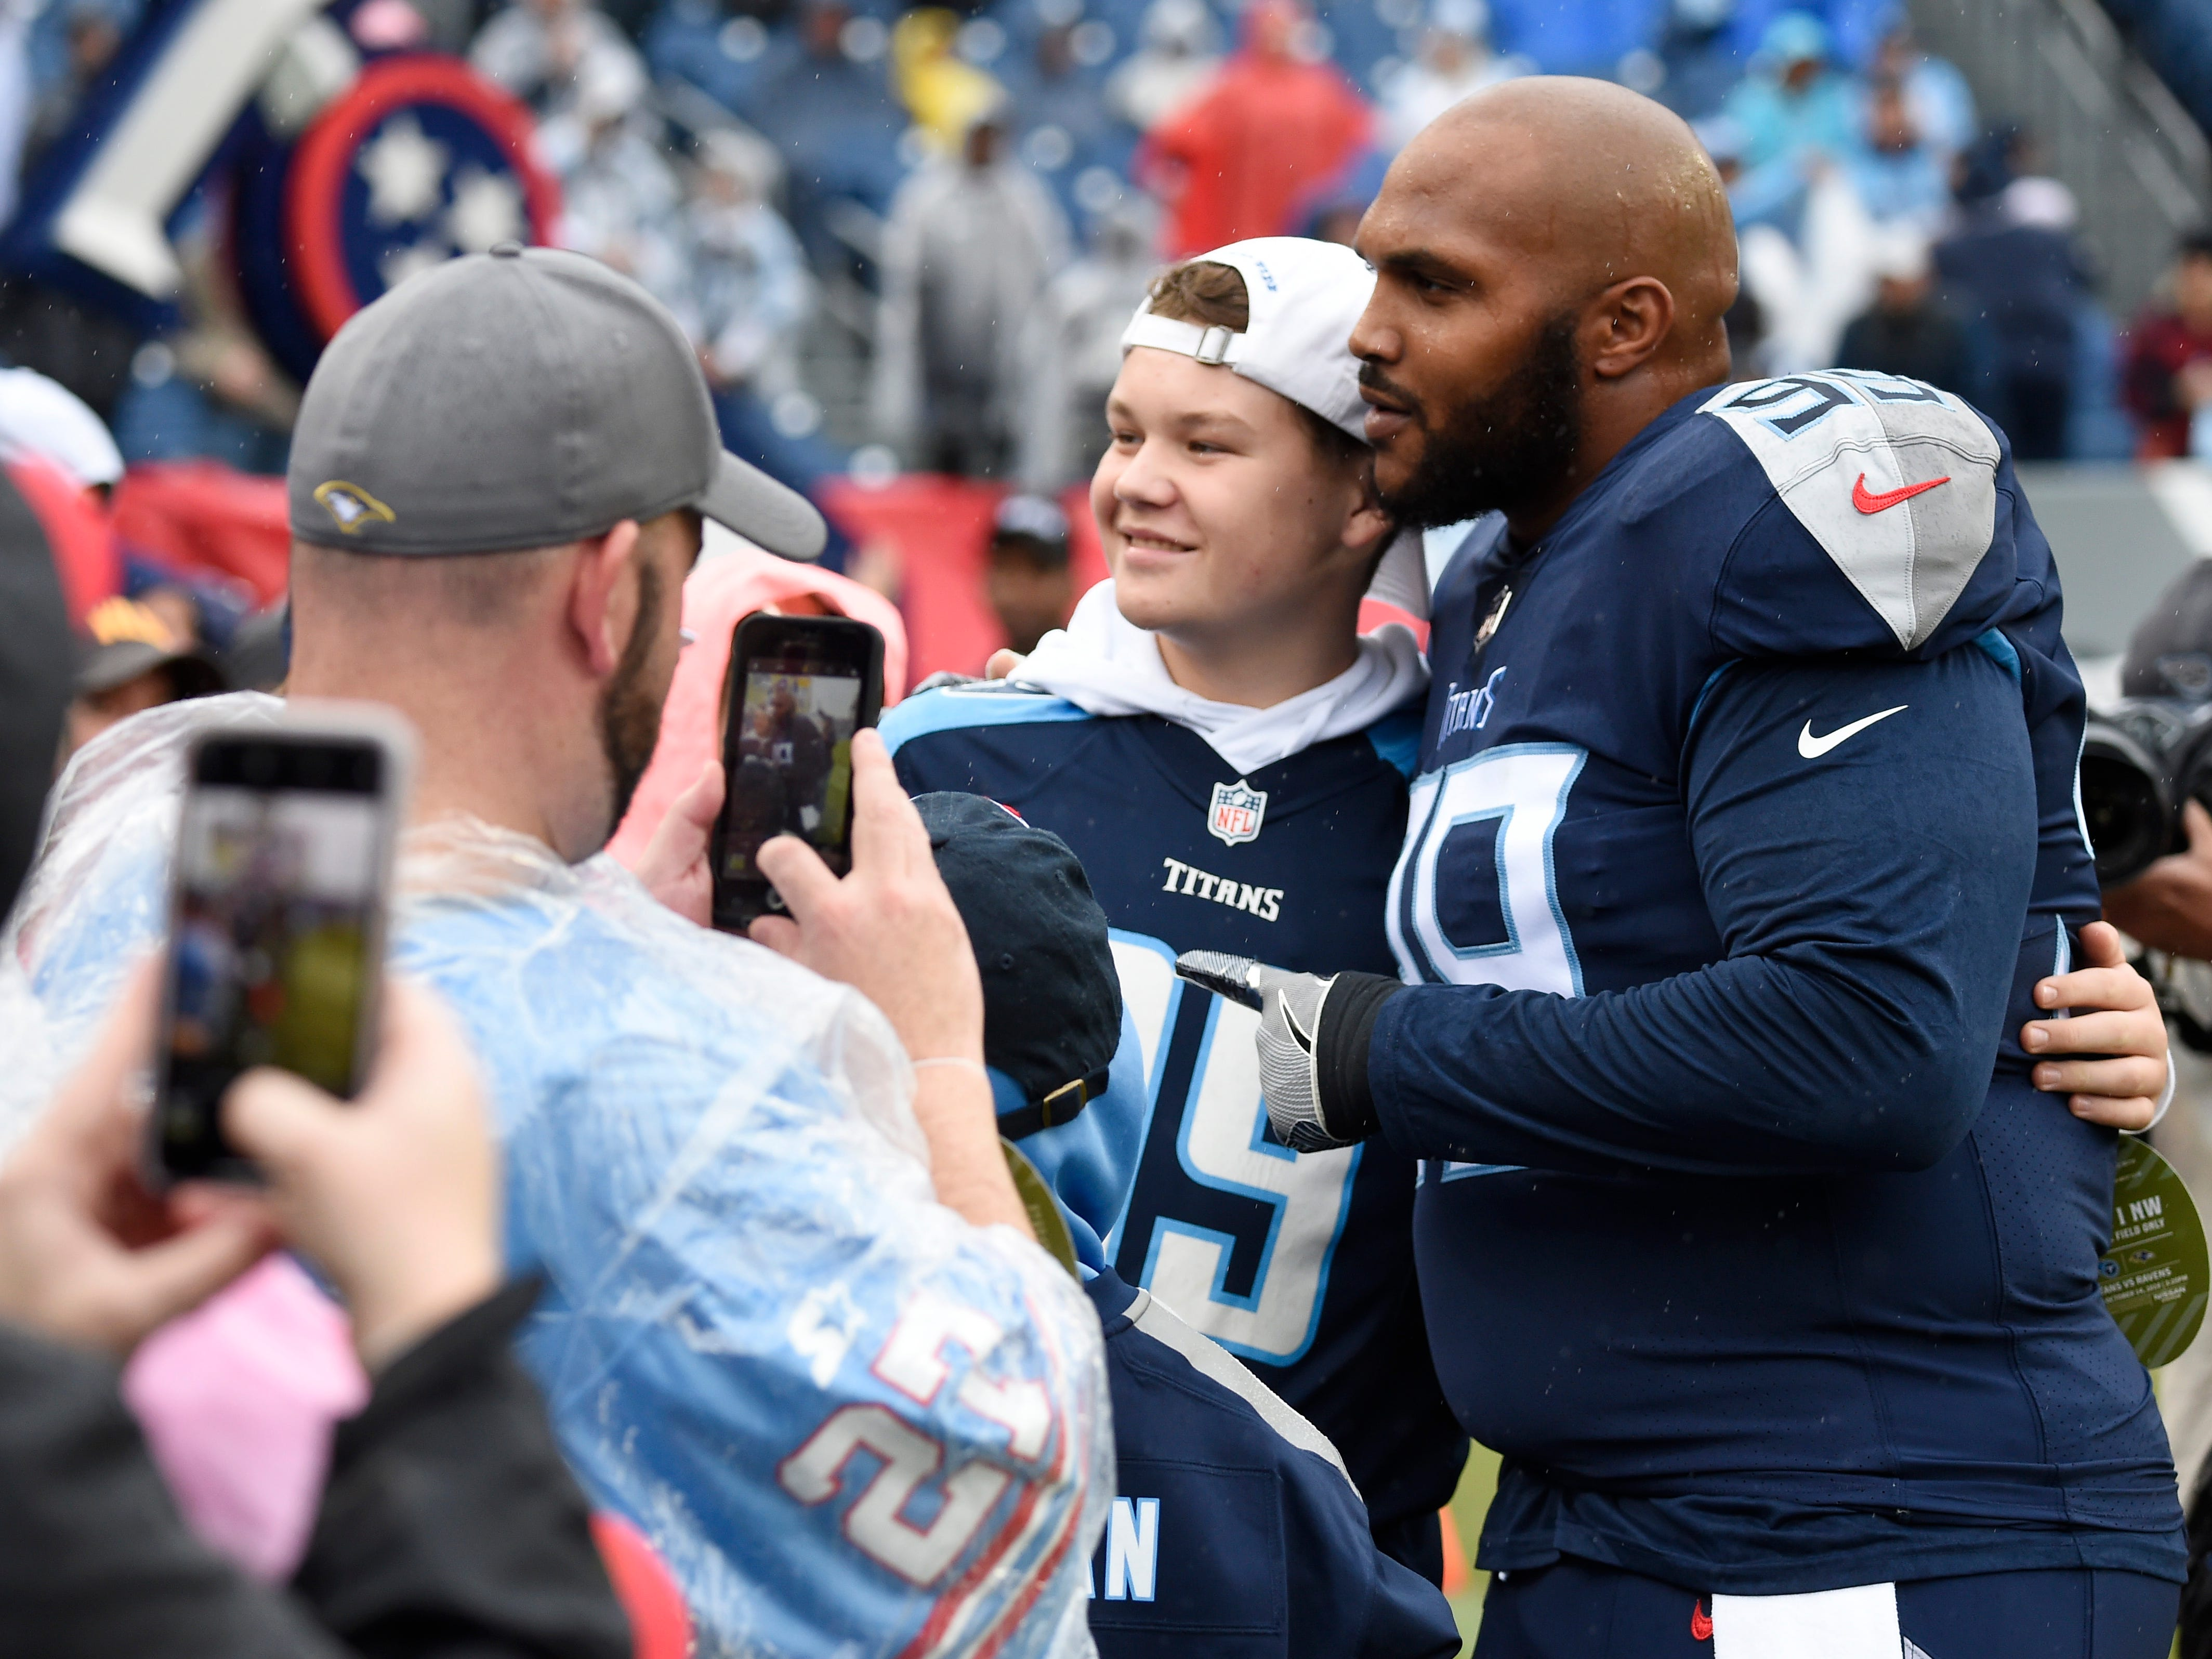 Titans defensive tackle Jurrell Casey (99) poses for a photo with a fan before the game at Nissan Stadium Sunday, Oct. 14, 2018, in Nashville, Tenn.